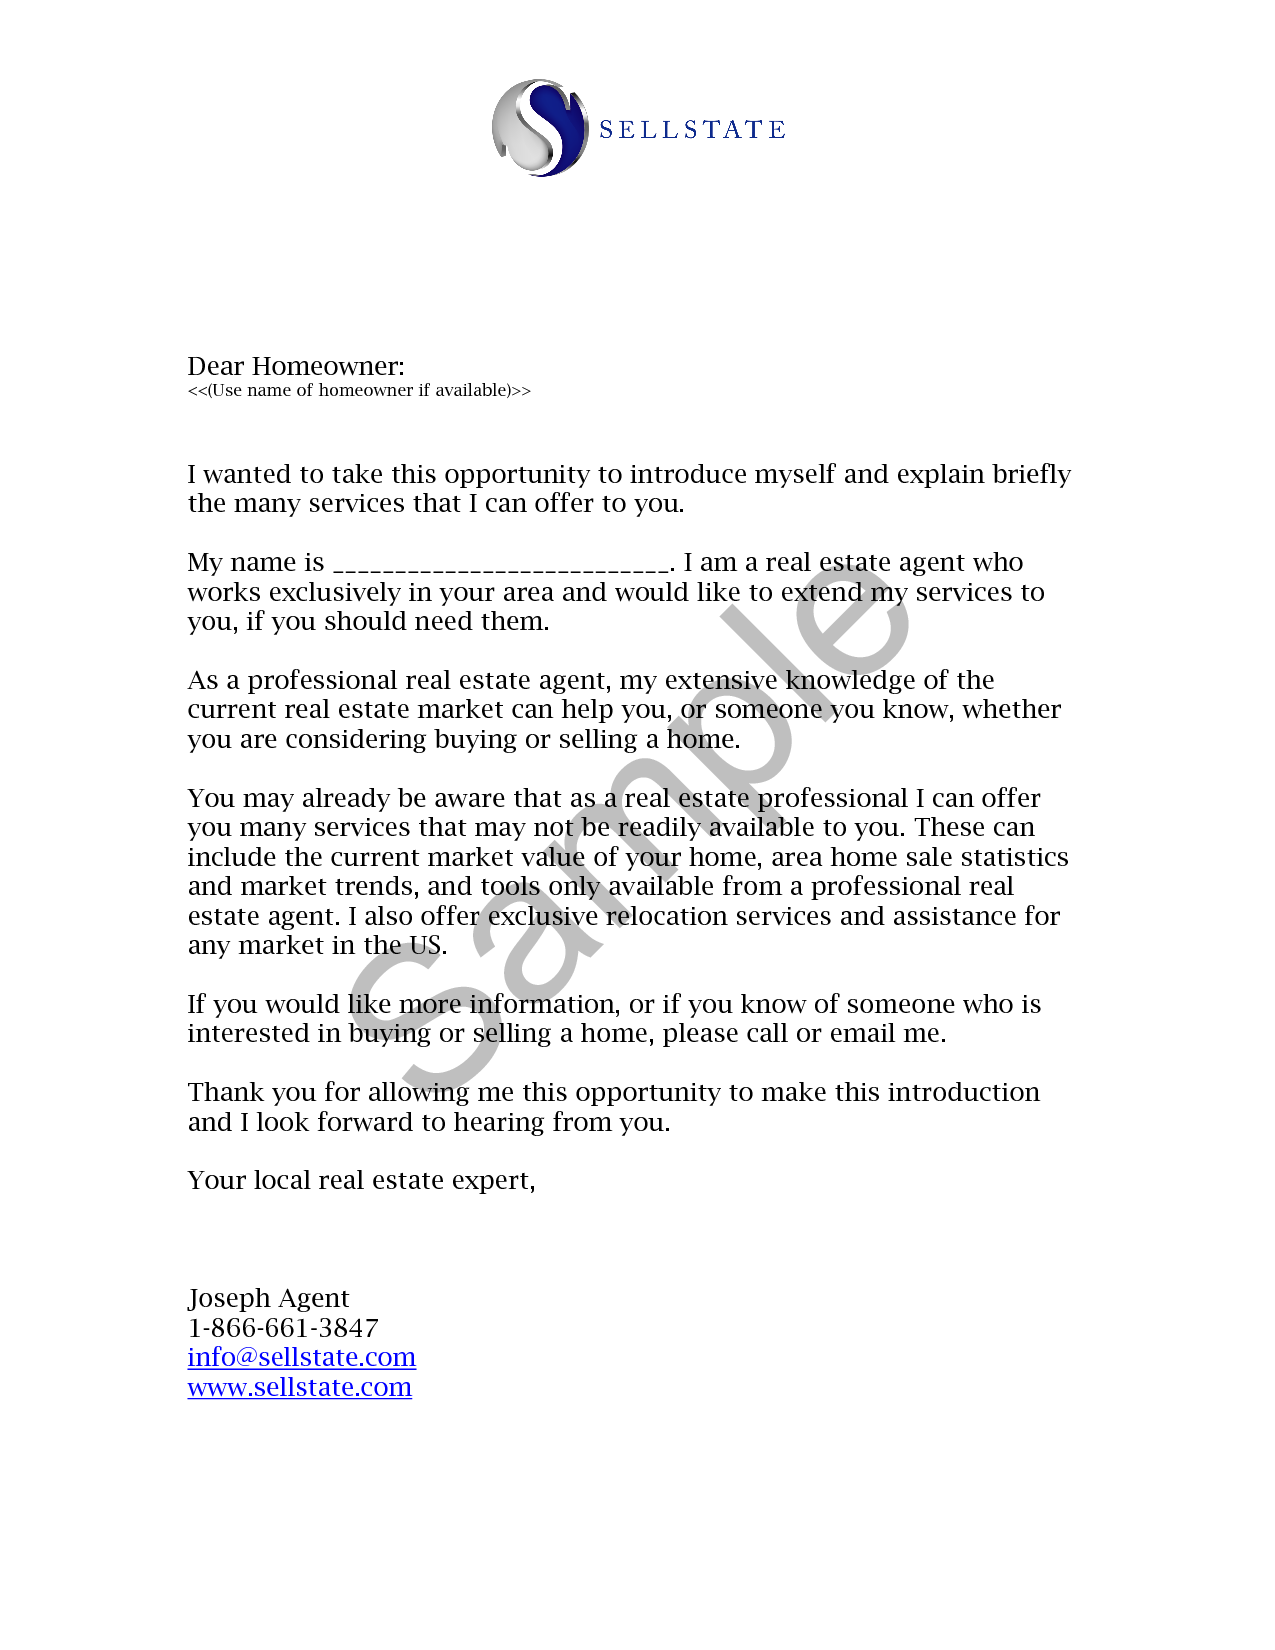 Real estate letters of introduction introduction letter for Covering letter for estate agent job